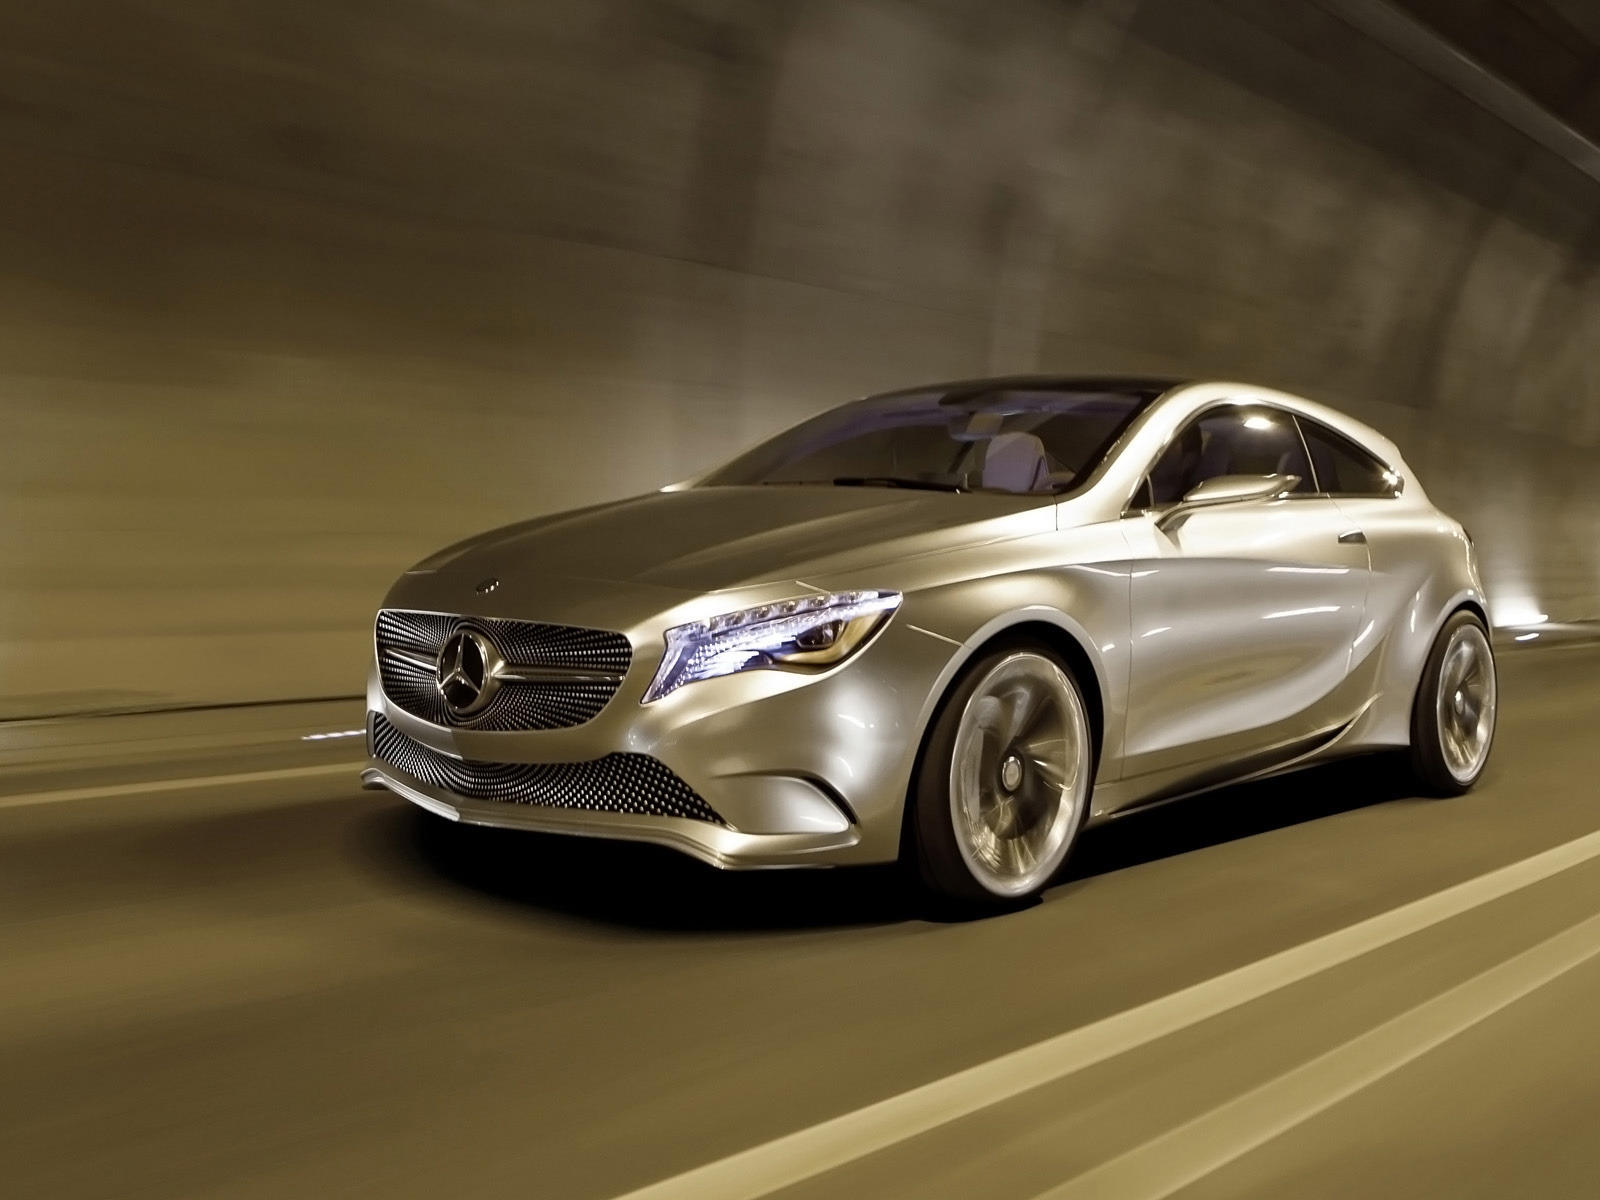 2011 Mercedes Benz Concept A for 1600 x 1200 resolution